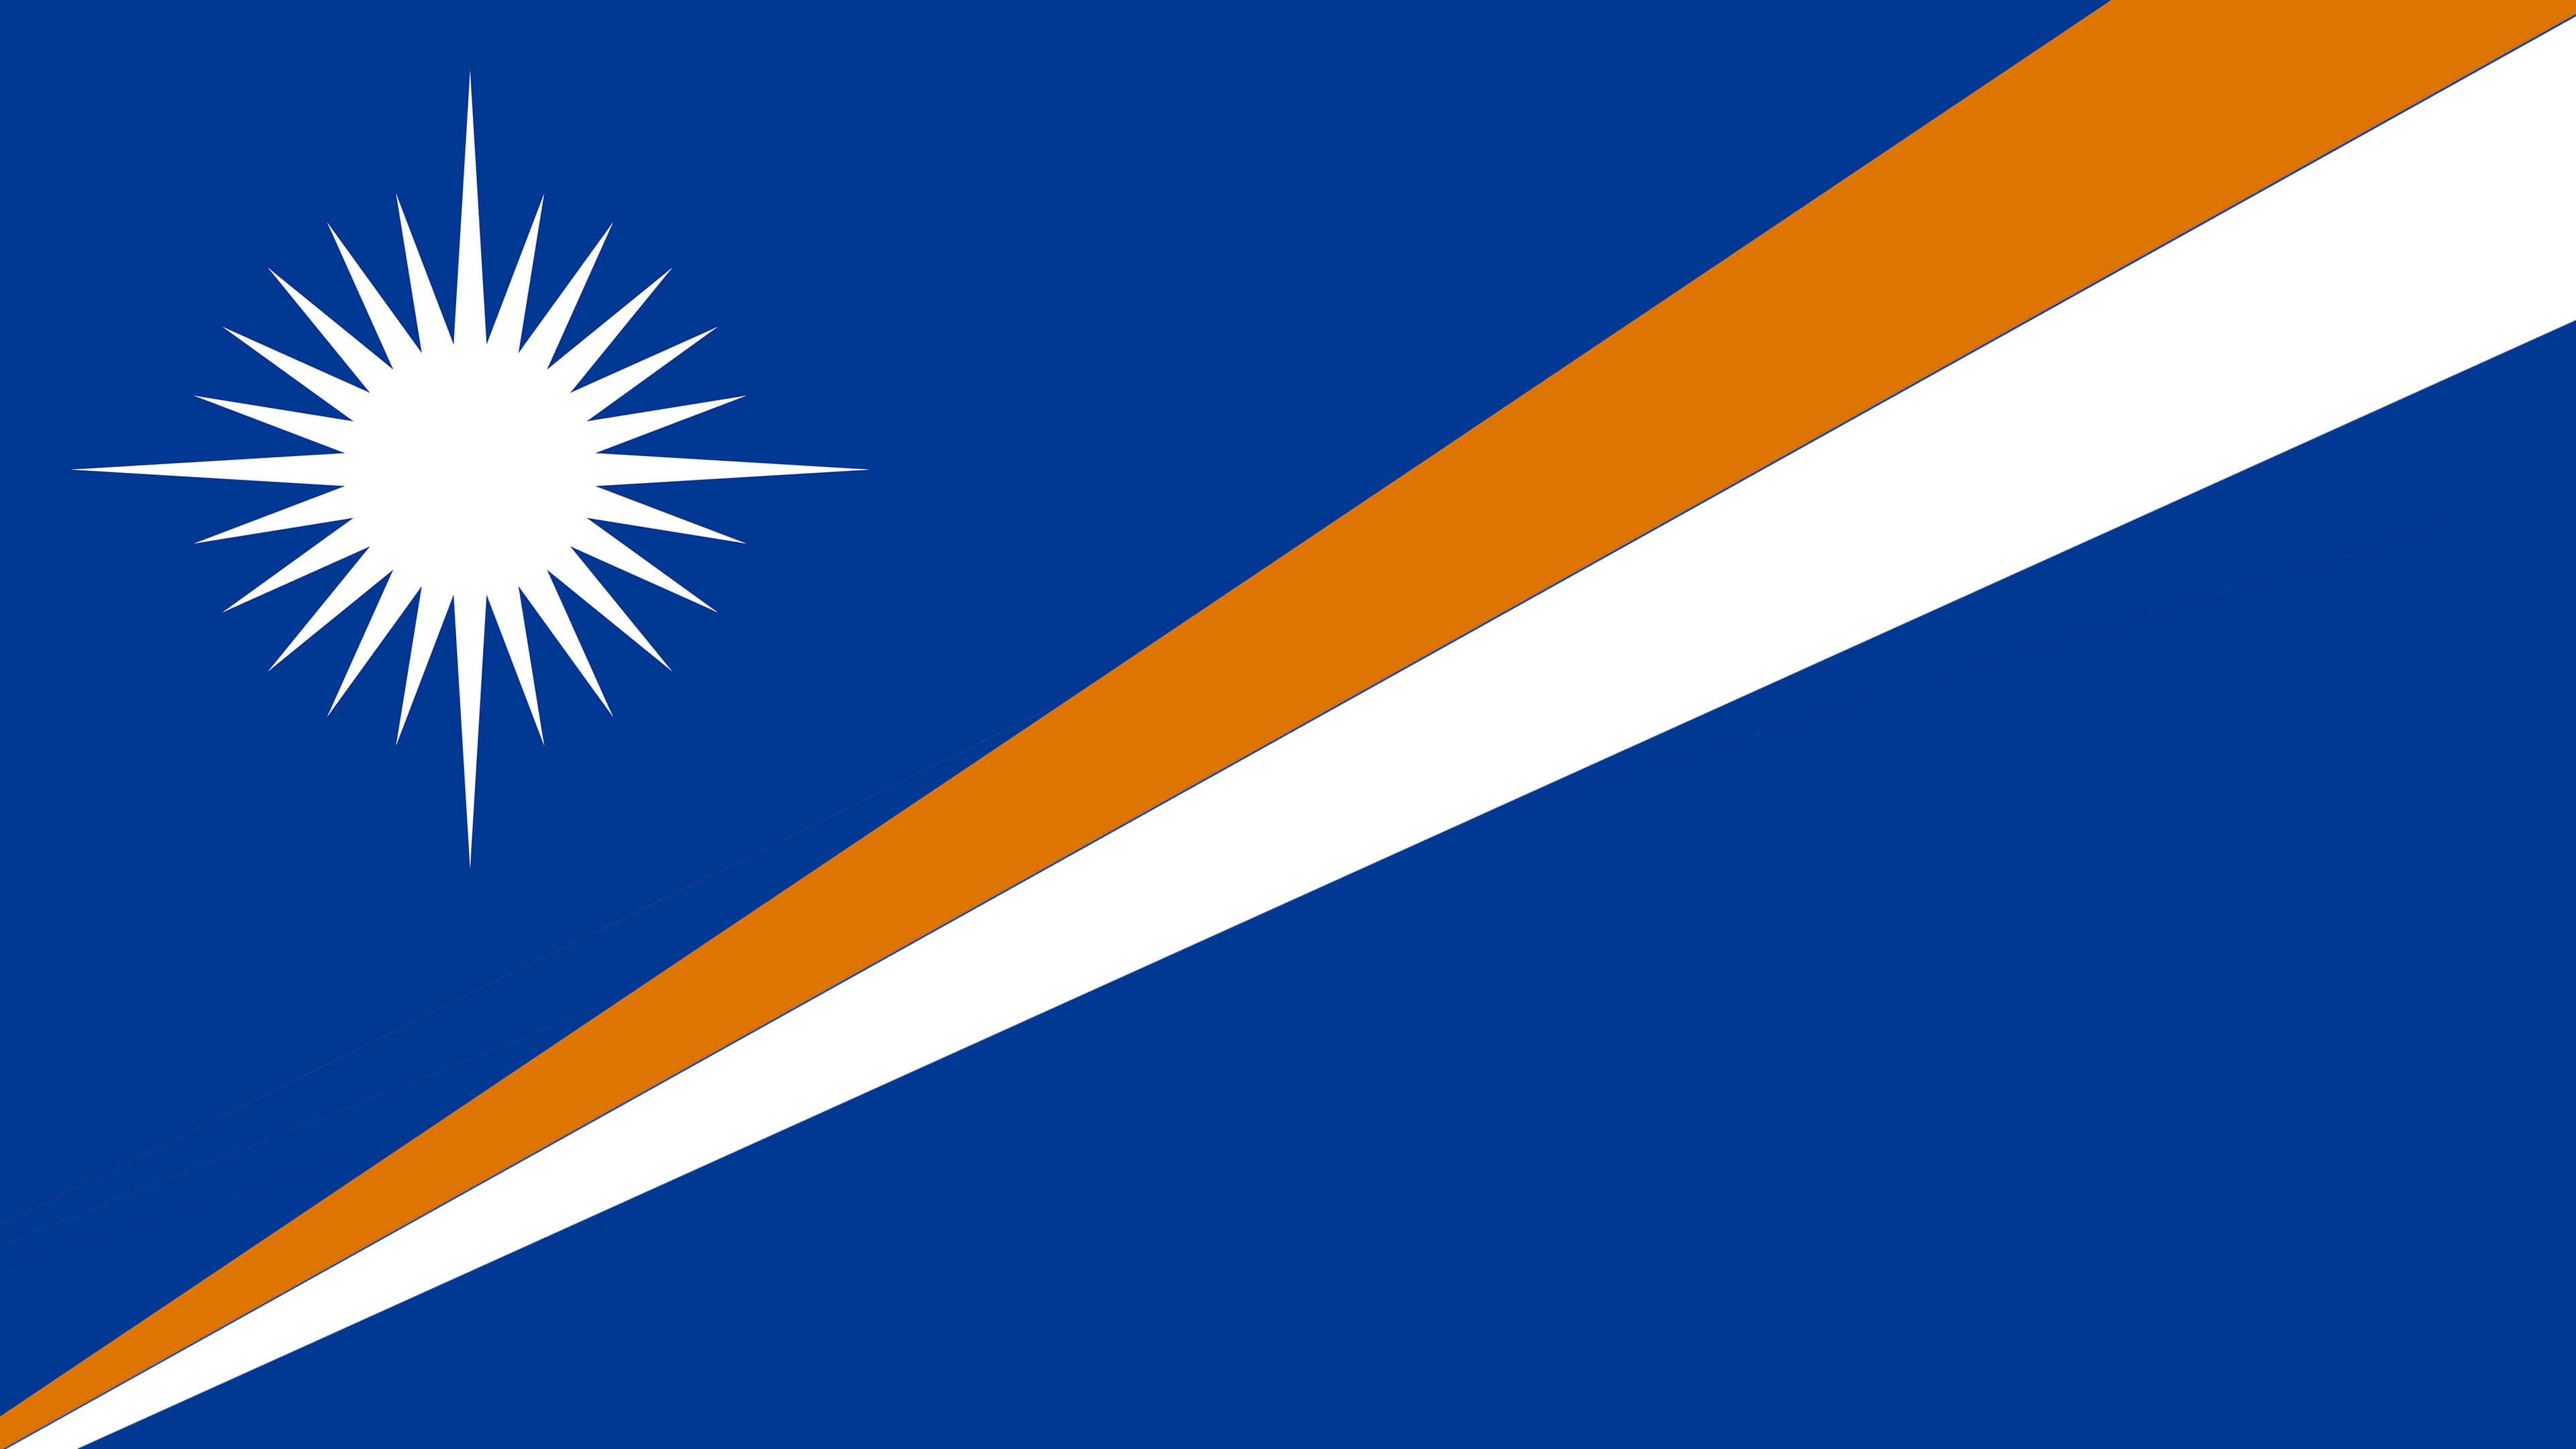 marshall islands flag uhd 4k wallpaper